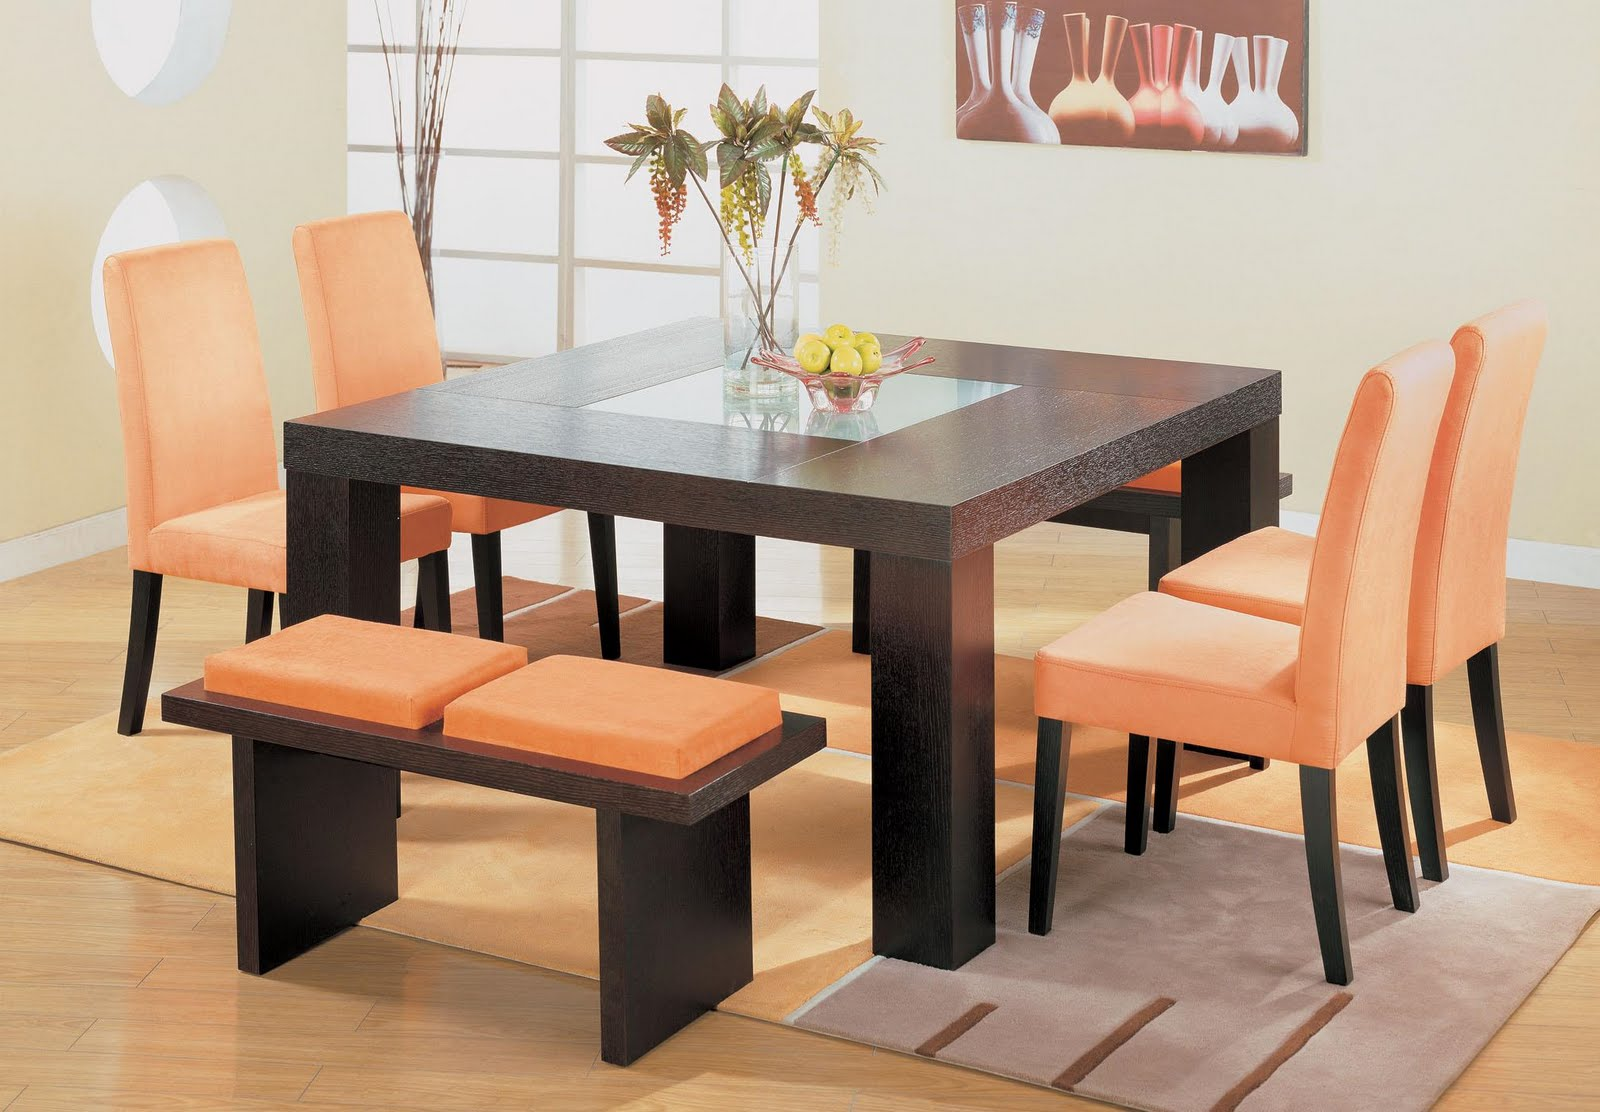 Dining Room Decor Table Design Square For Your Home